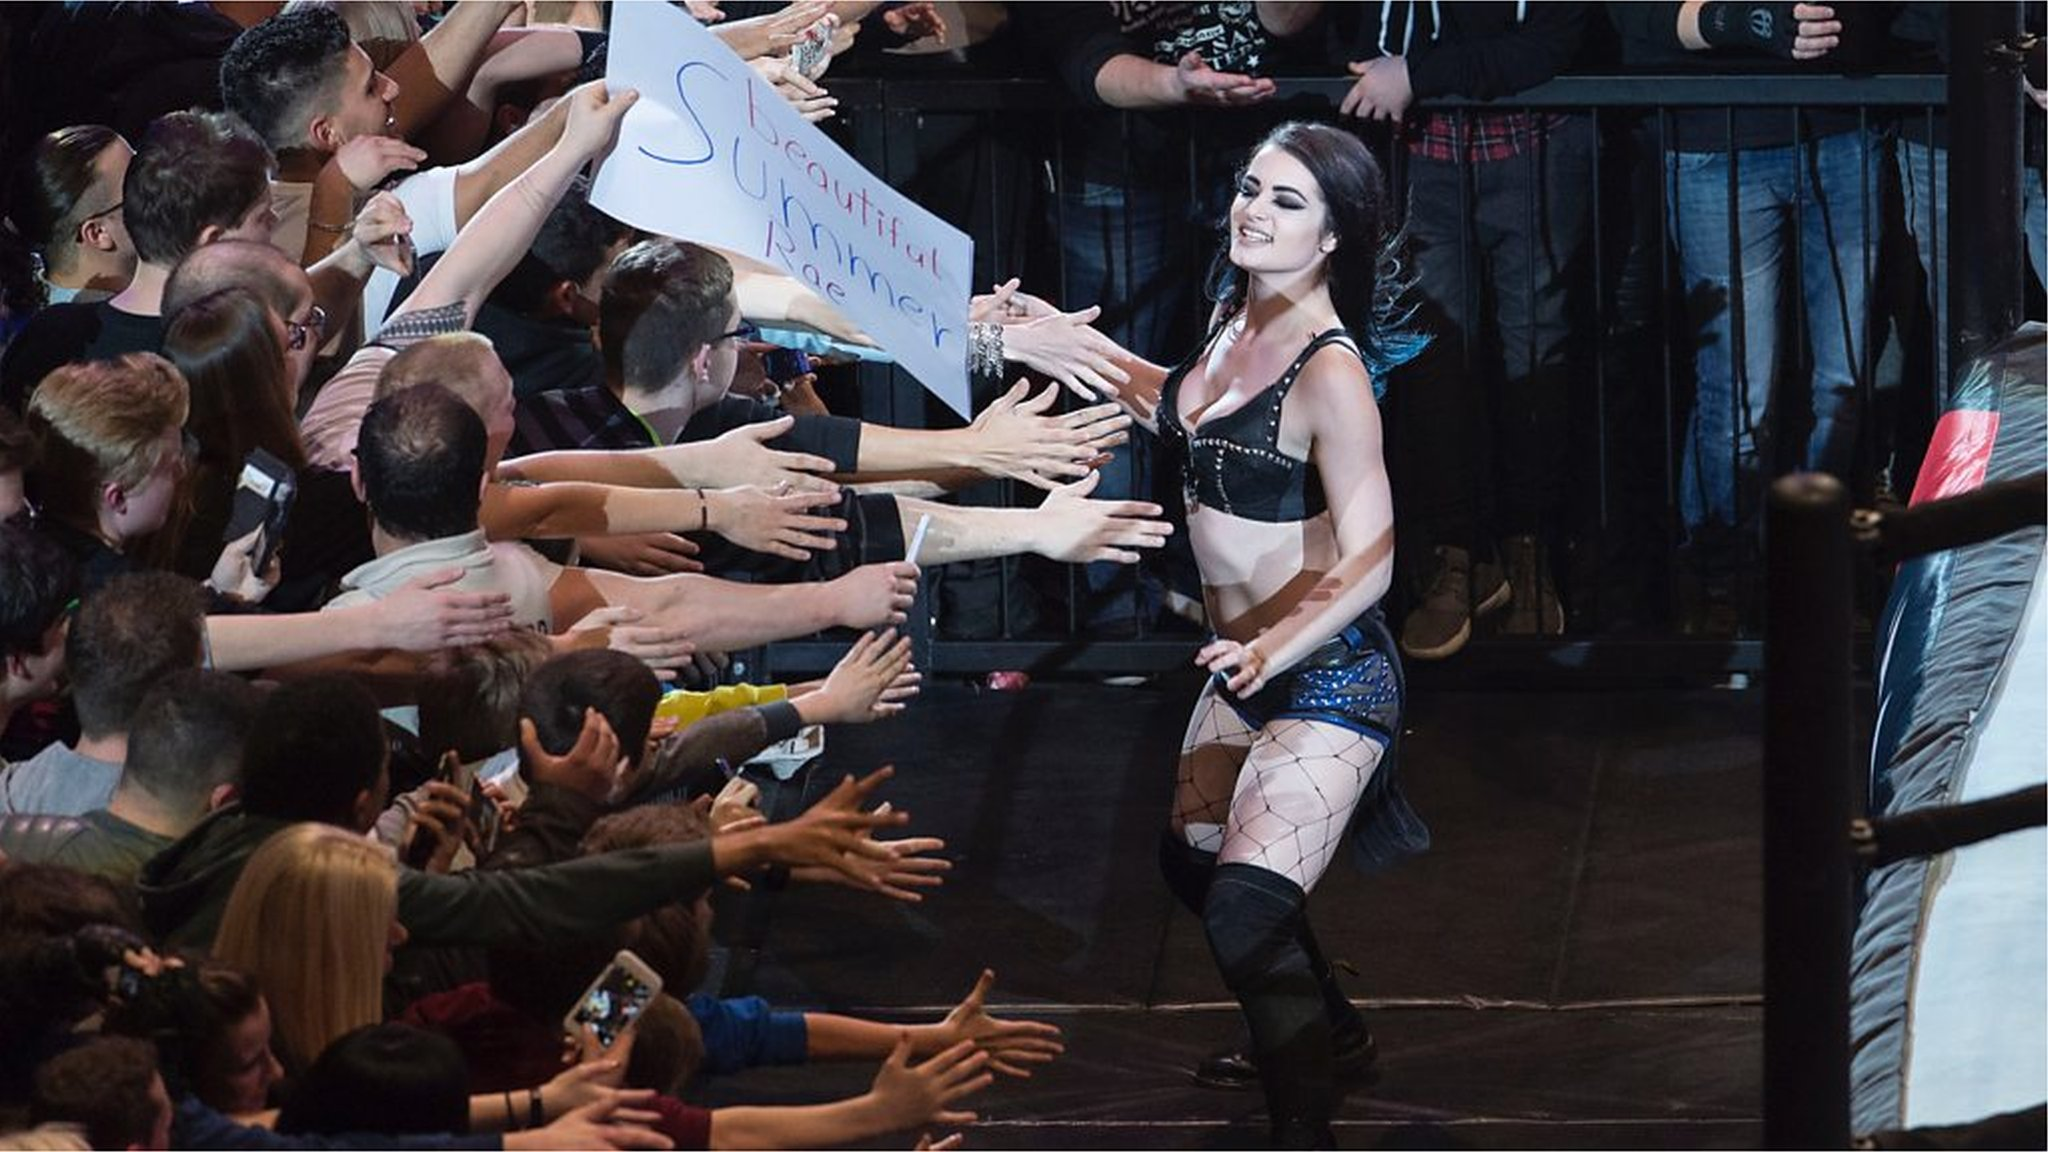 Paige WWE biopic produced by The Rock in Norwich premiere